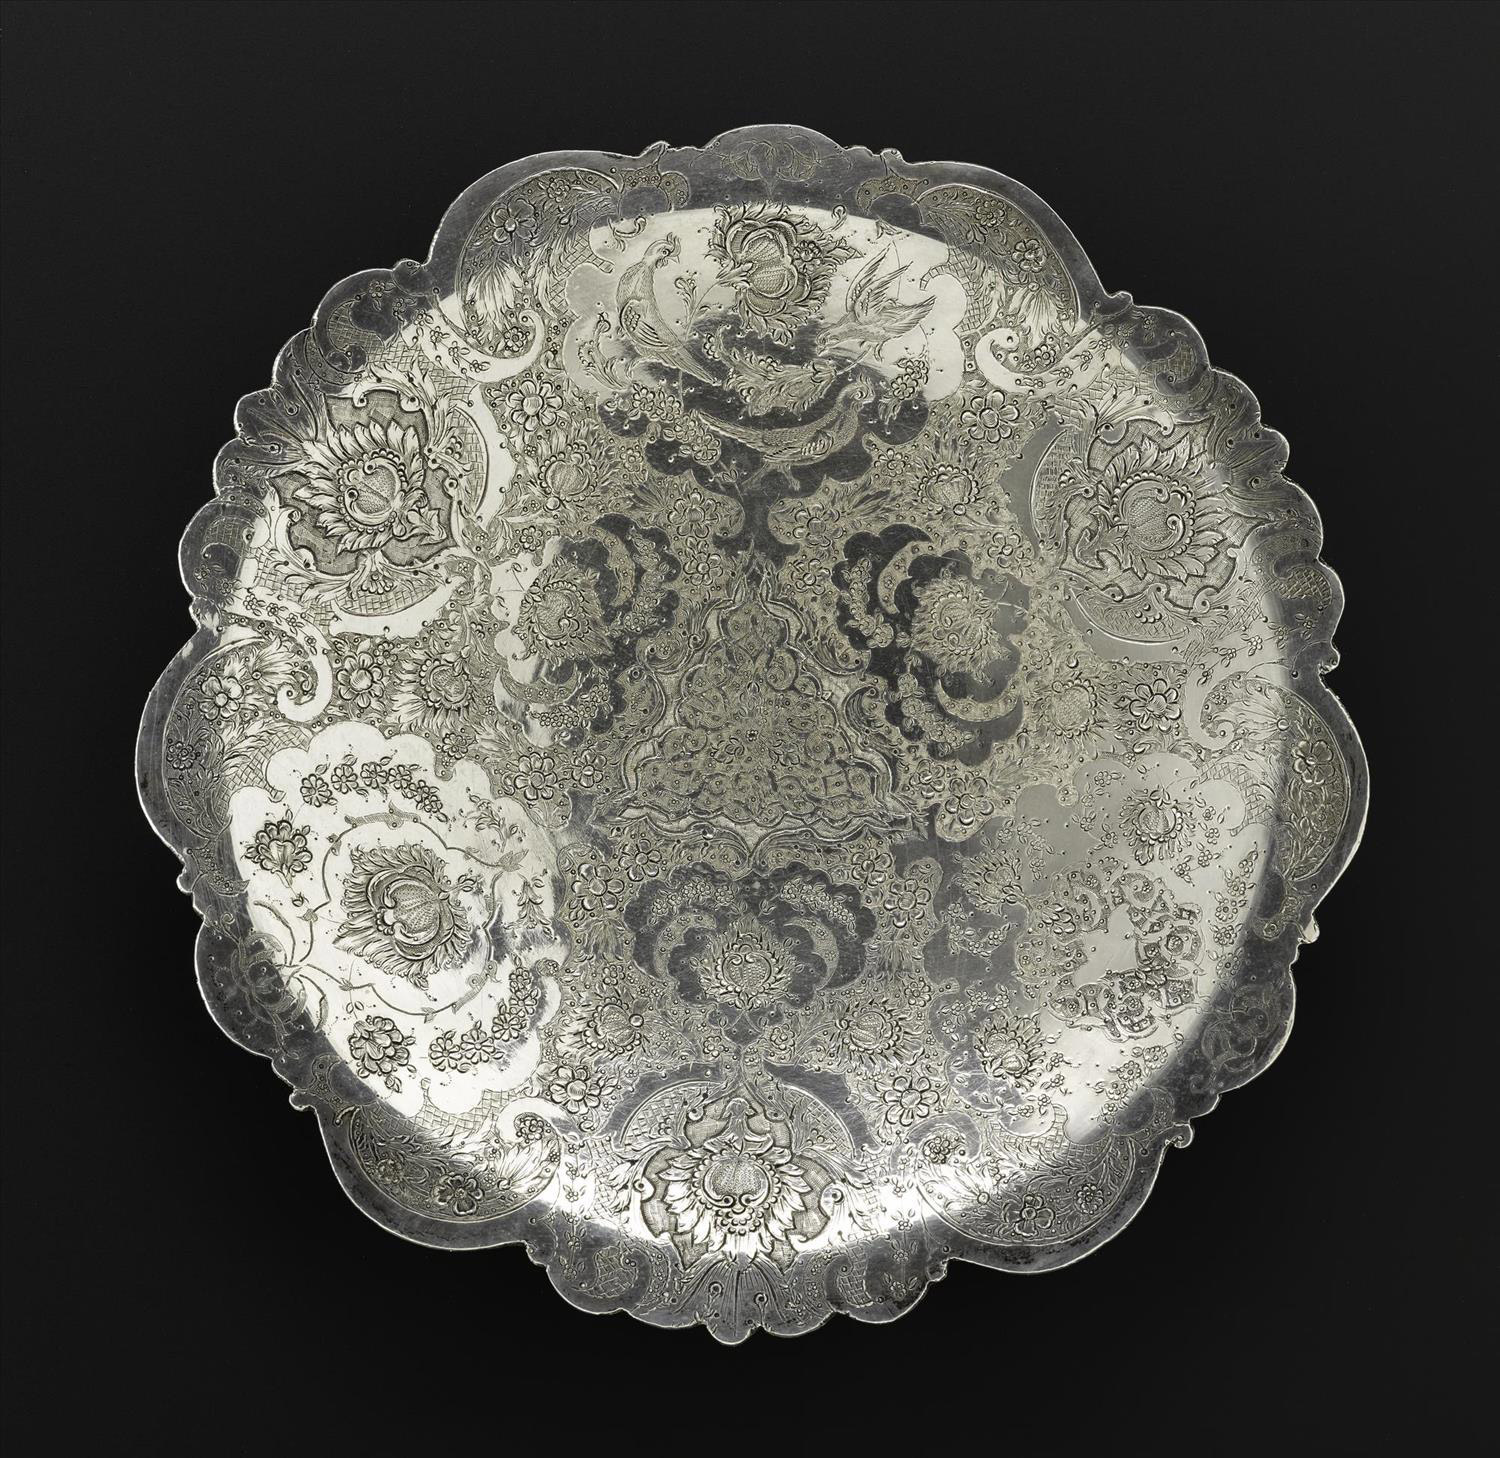 Circular dish of silver, shallow, engraved with floral decoration and three birds depicted in profile in the top centre medallion, hallmarked on the reverse, Iran, probably Isfahan, 1920s-1940s, acc.no V.2015.61